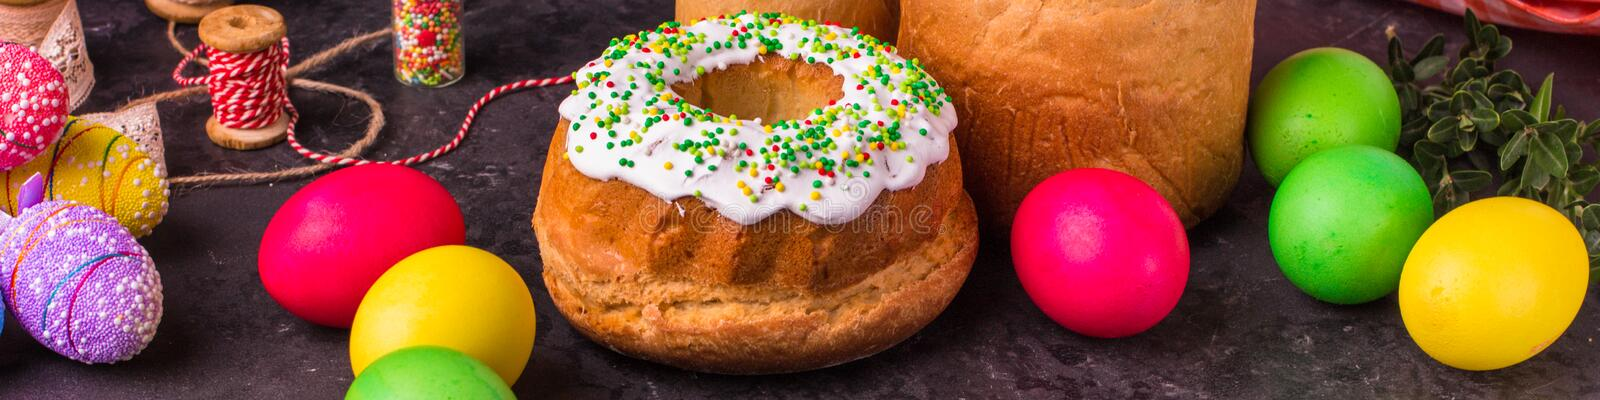 Easter cake and Easter eggs, traditional holiday attributes Happy Easter!. food background. top view. Easter cake and Easter eggs, traditional holiday attributes royalty free stock photography